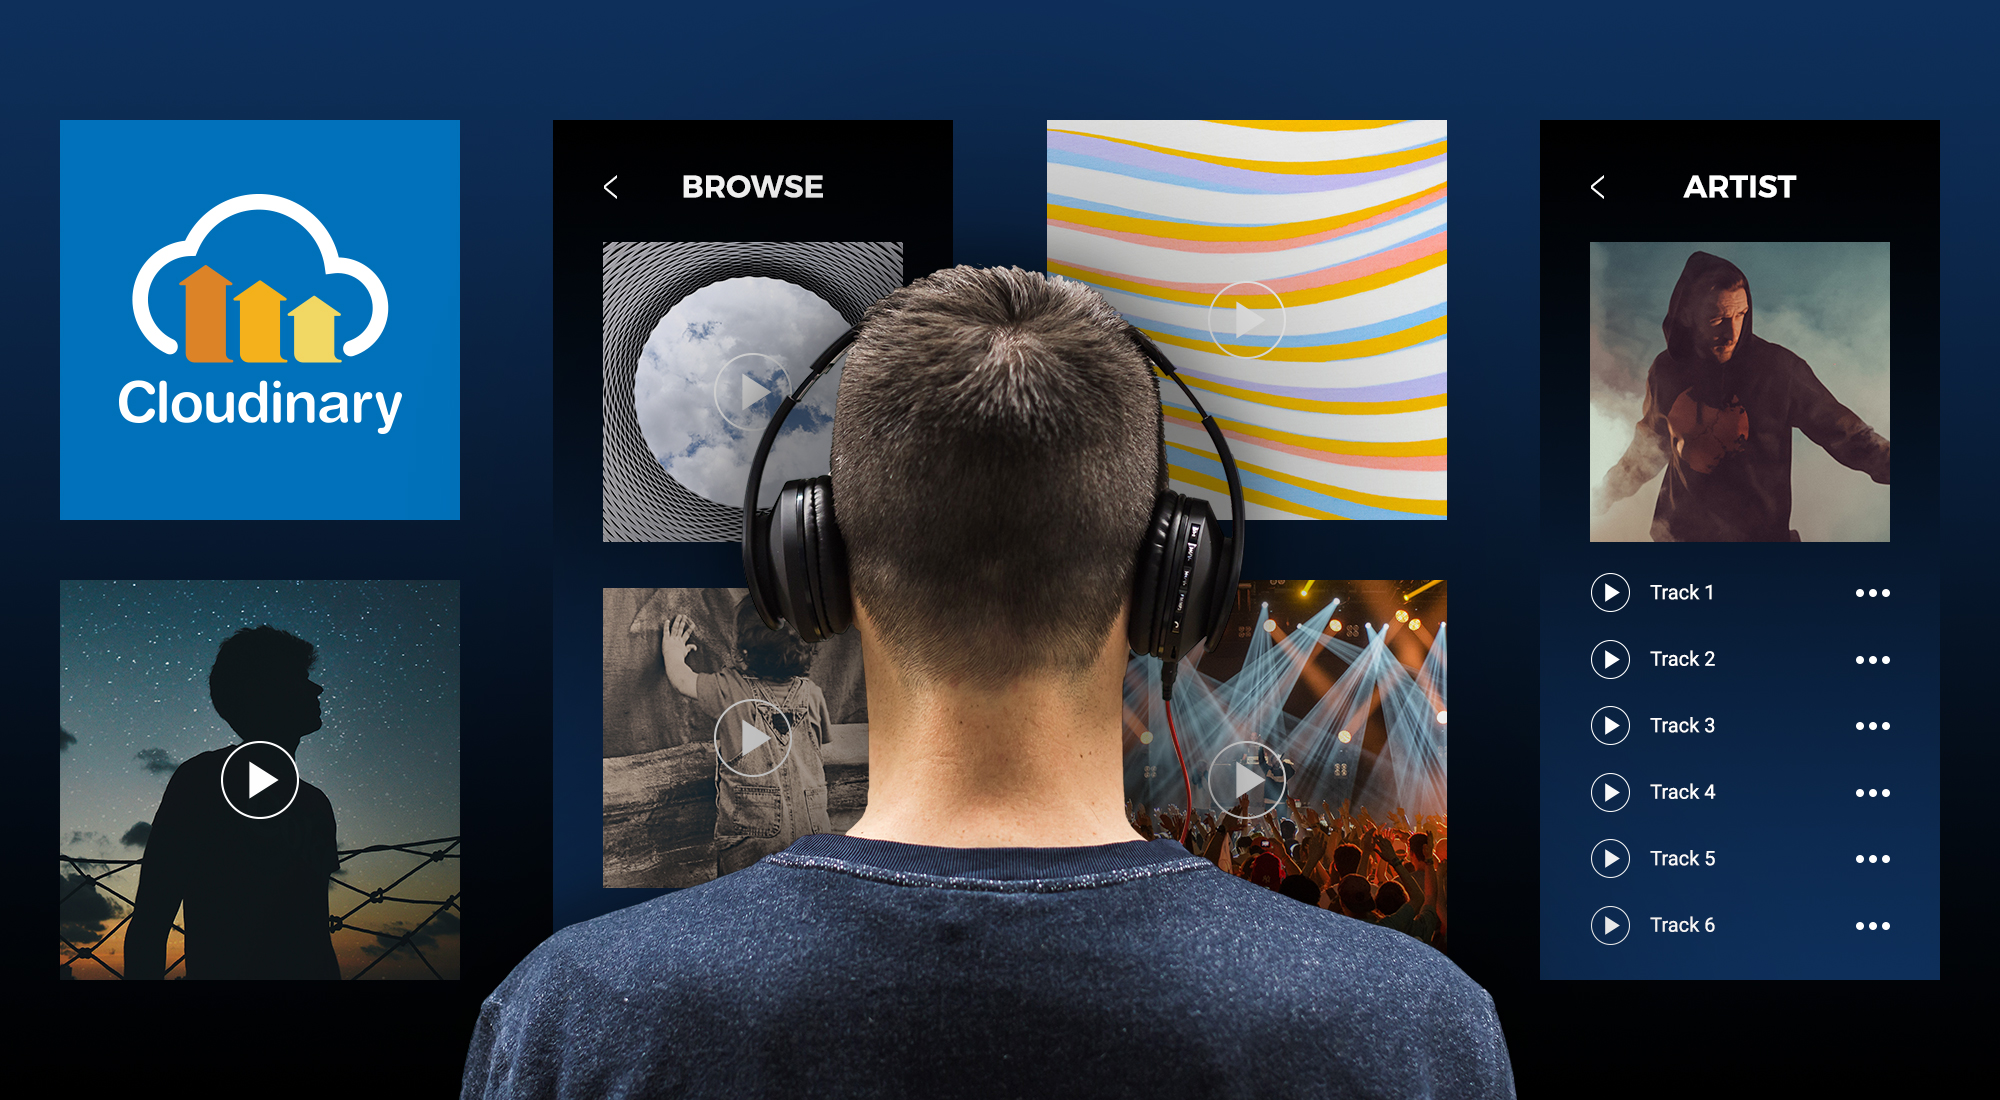 Building a Music Discovery Service